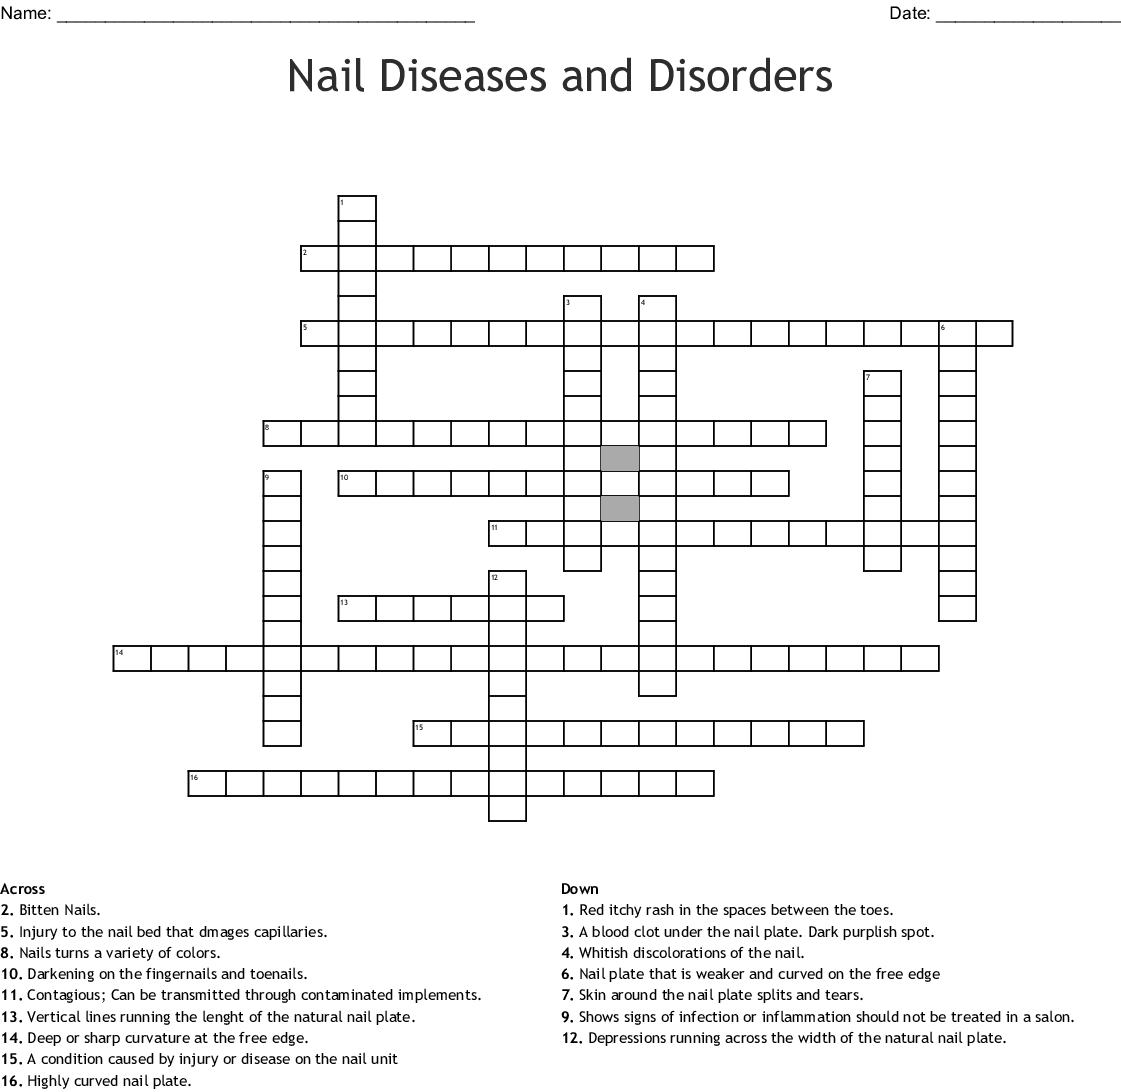 Nail Diseases And Disorders Crossword